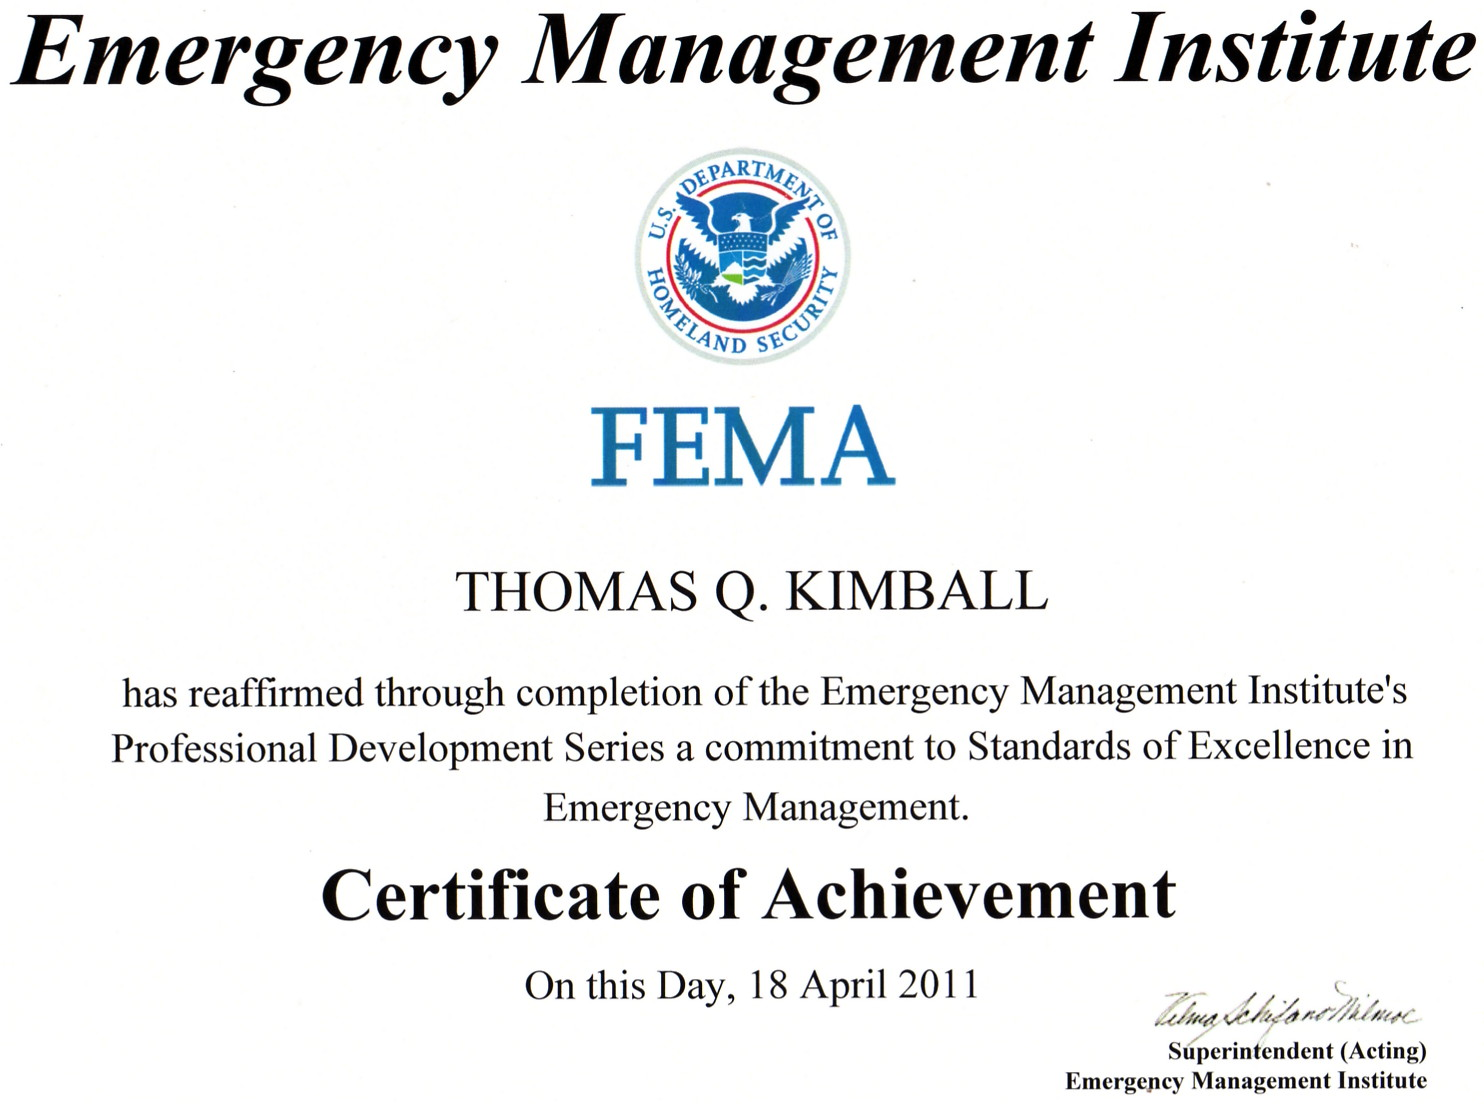 Thomas Quick Kimball WA8UNS Blog: FEMA Continuity of Operations Excellence SeriesLevel 1